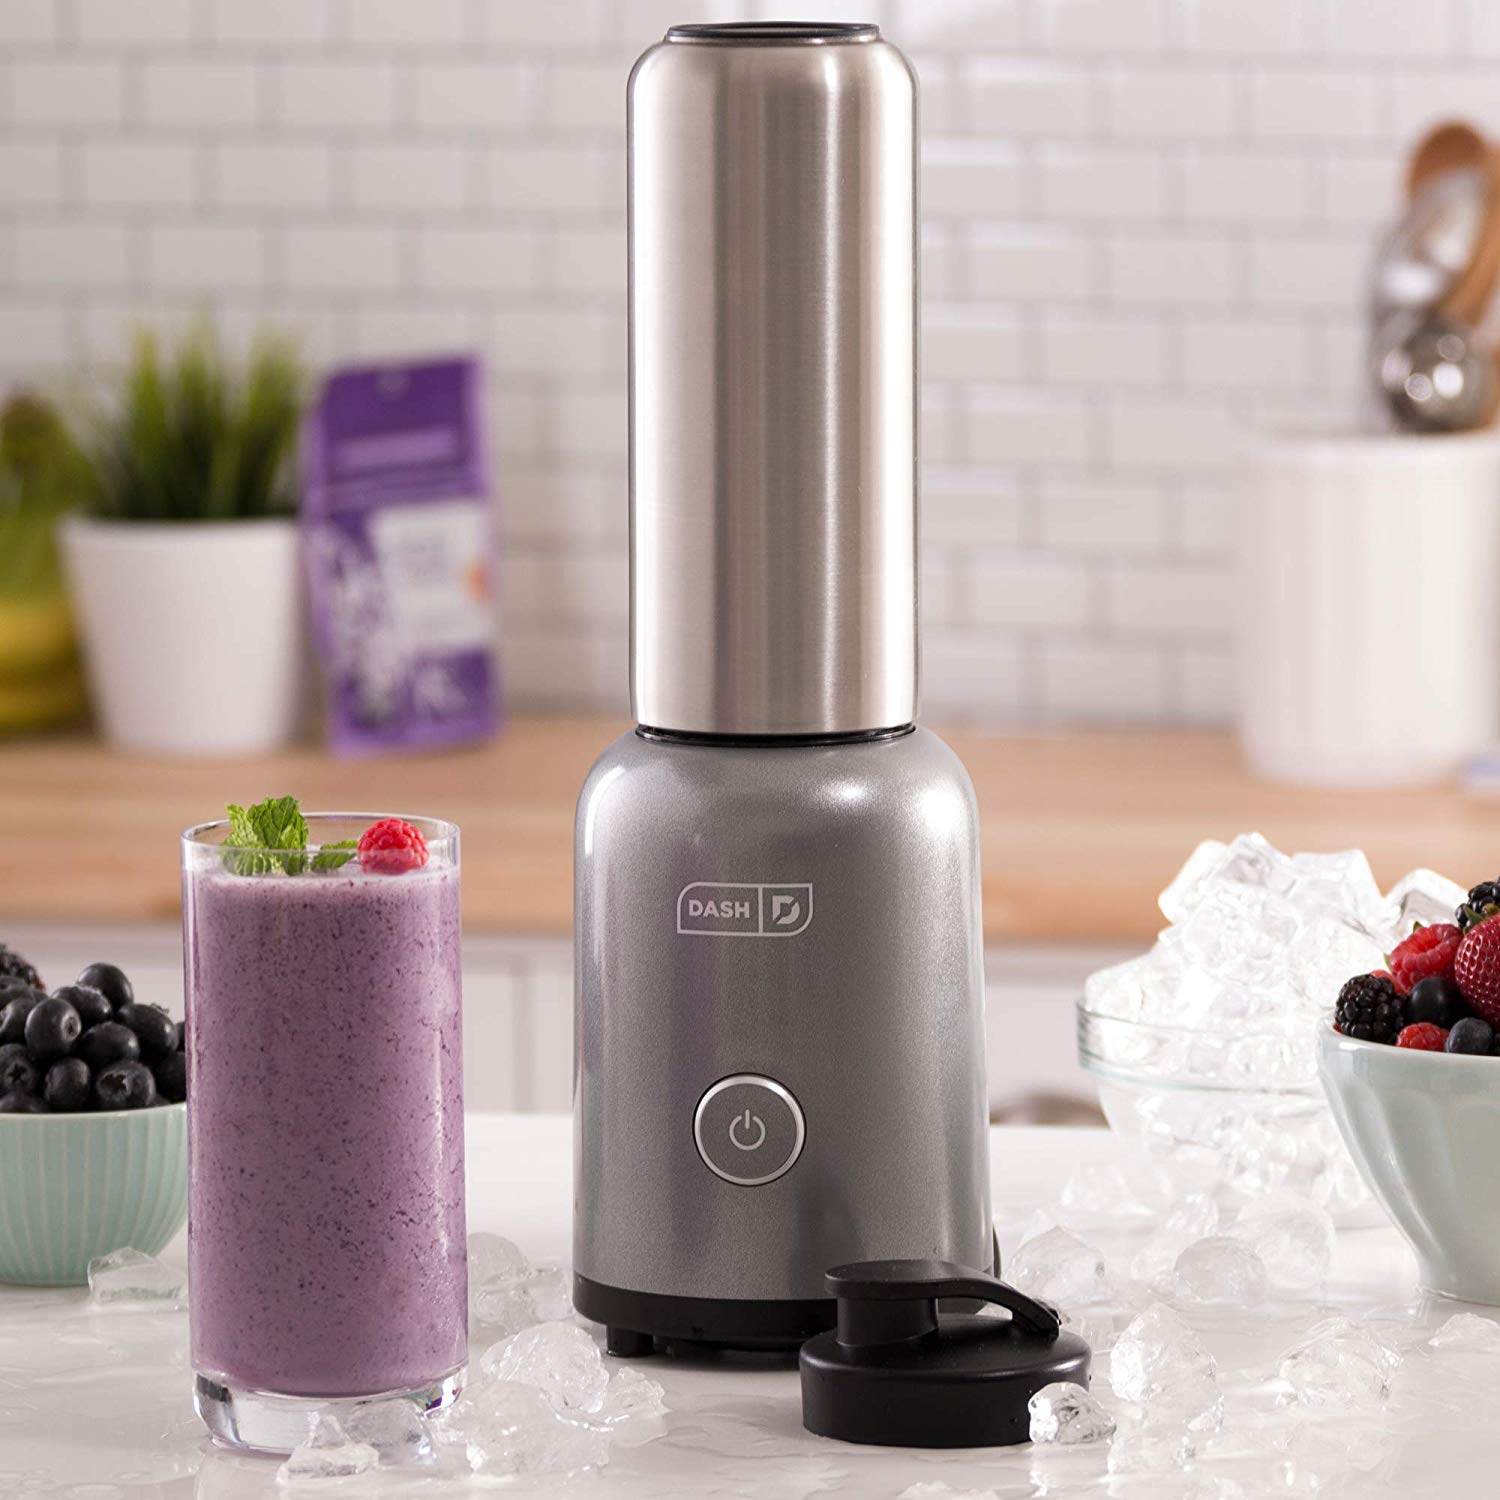 Dash Arctic Chill Blender: The Compact Personal Blender